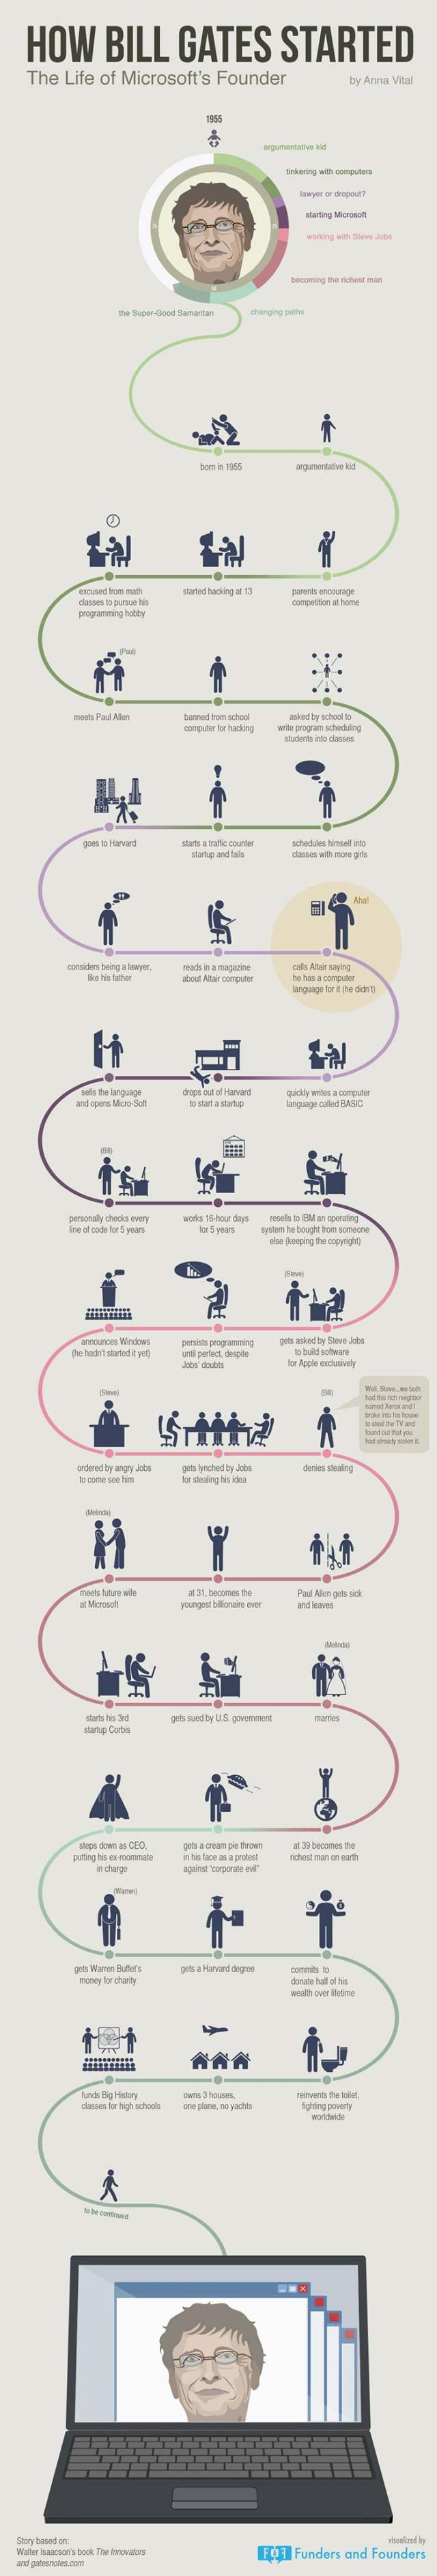 How-Bill-Gates-Started-Infographic